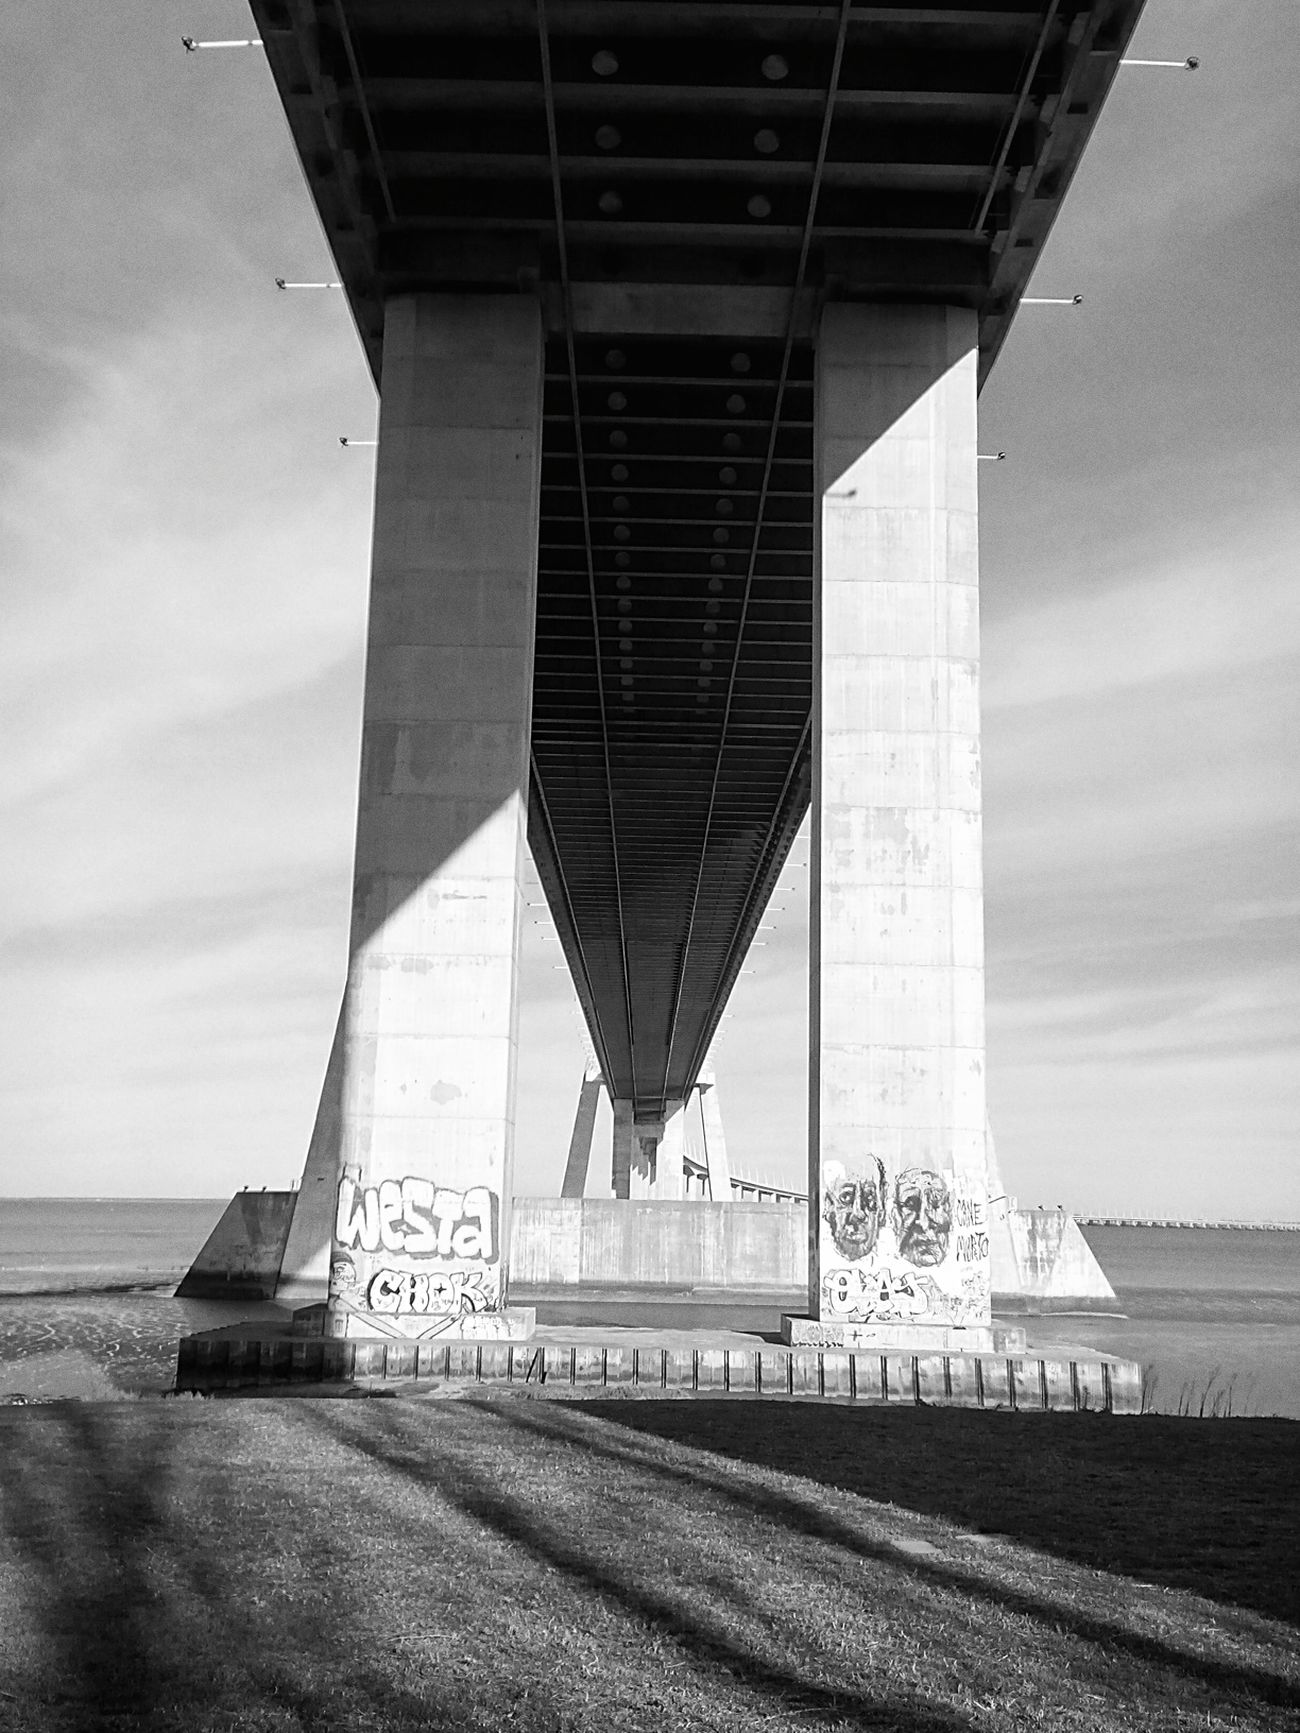 Ponte vasco da gama . EyeEm Best Shots Eyem Best Shots - Black + White Eyem Best Shot - Architecture Portugal Lisbon Open Edit Eyem Lisboa Lisboa Bairroalto First Eyeem Photo